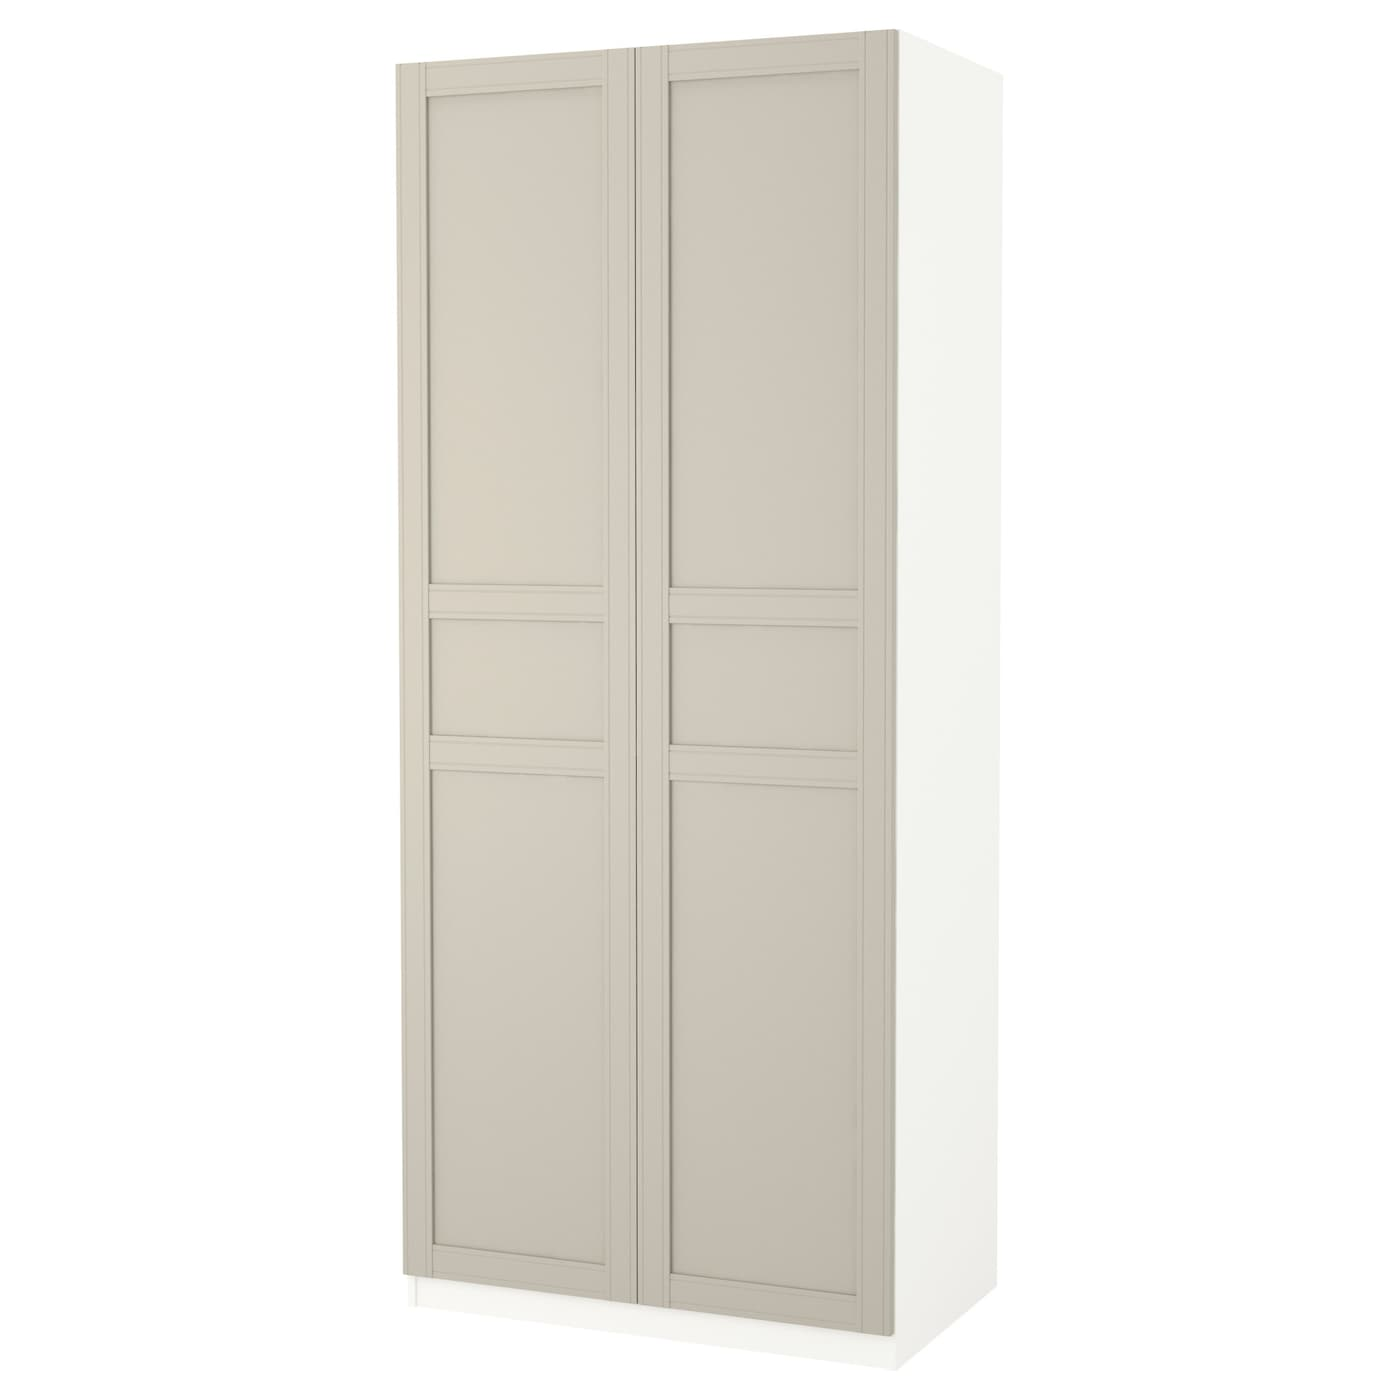 pax armoire penderie blanc flisberget beige clair 100 x 60 x 236 cm ikea. Black Bedroom Furniture Sets. Home Design Ideas